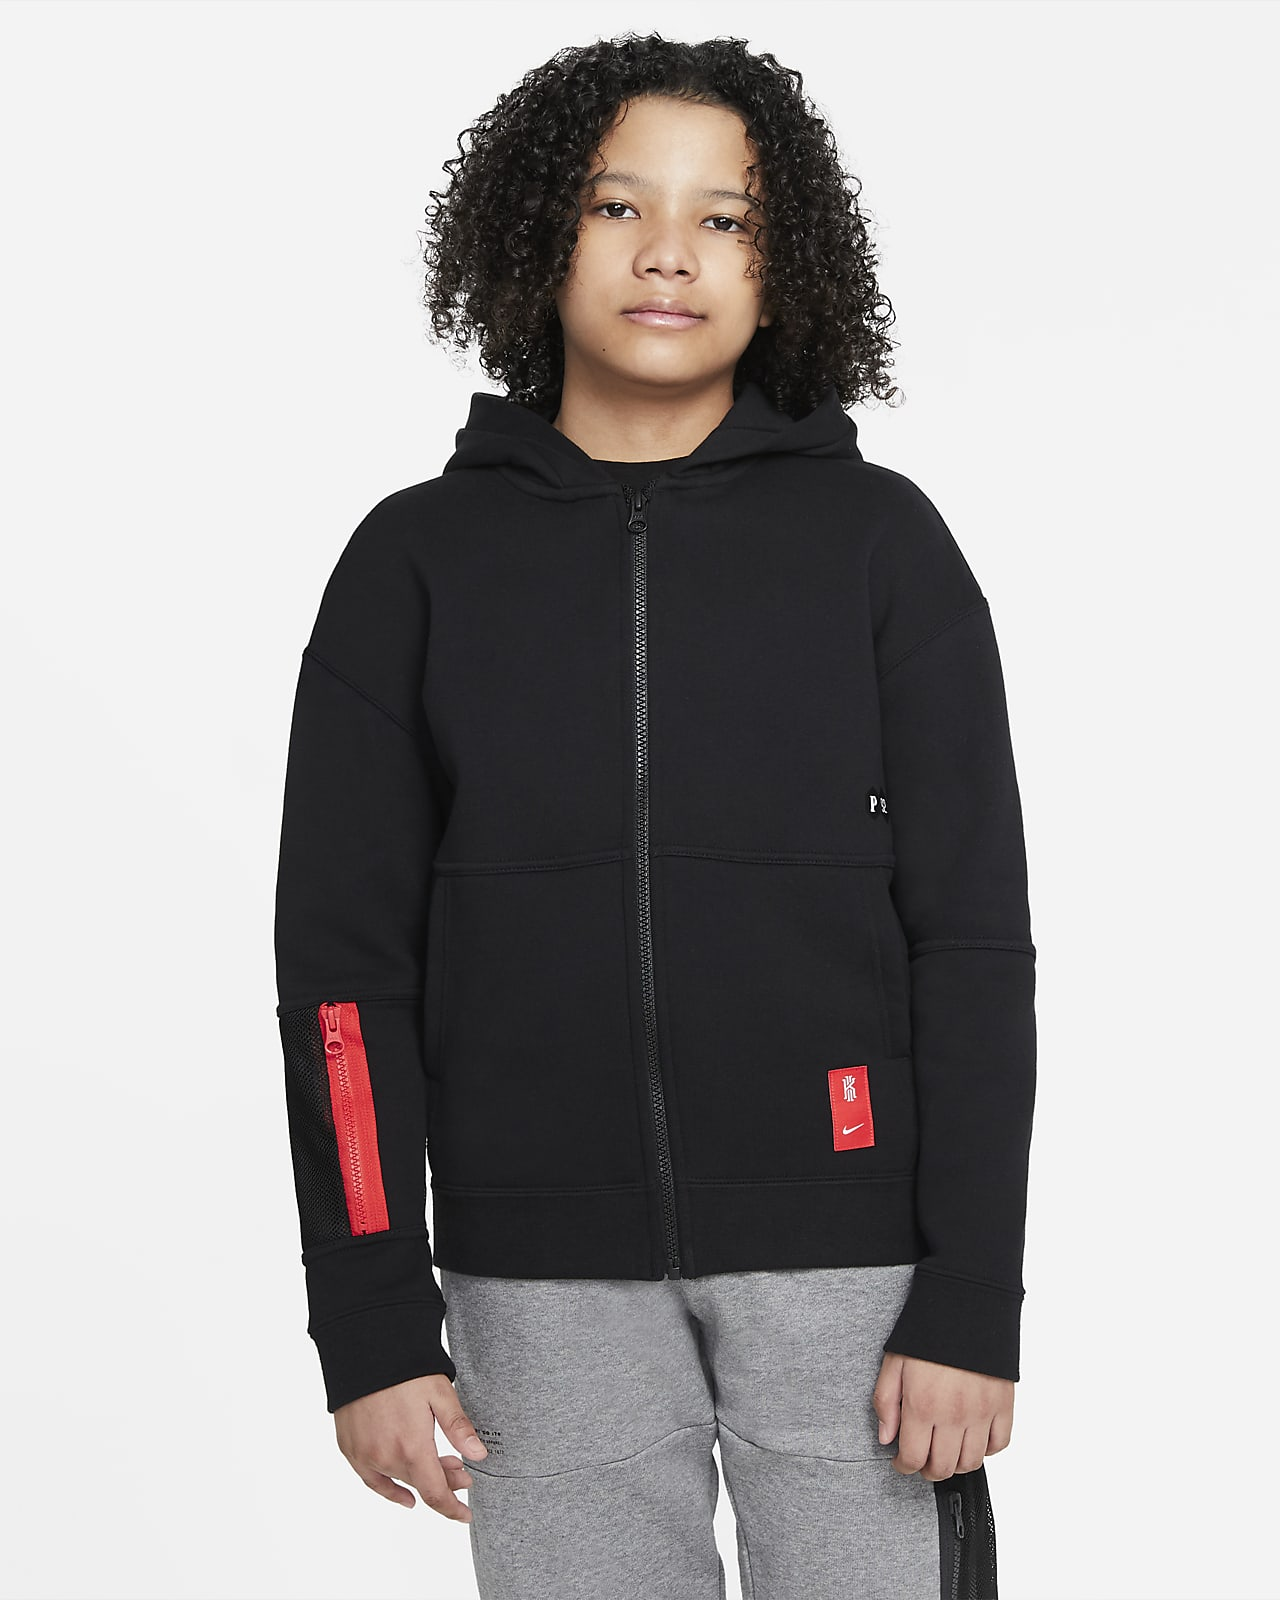 Kyrie Big Kids' (Boys') Full-Zip Hoodie